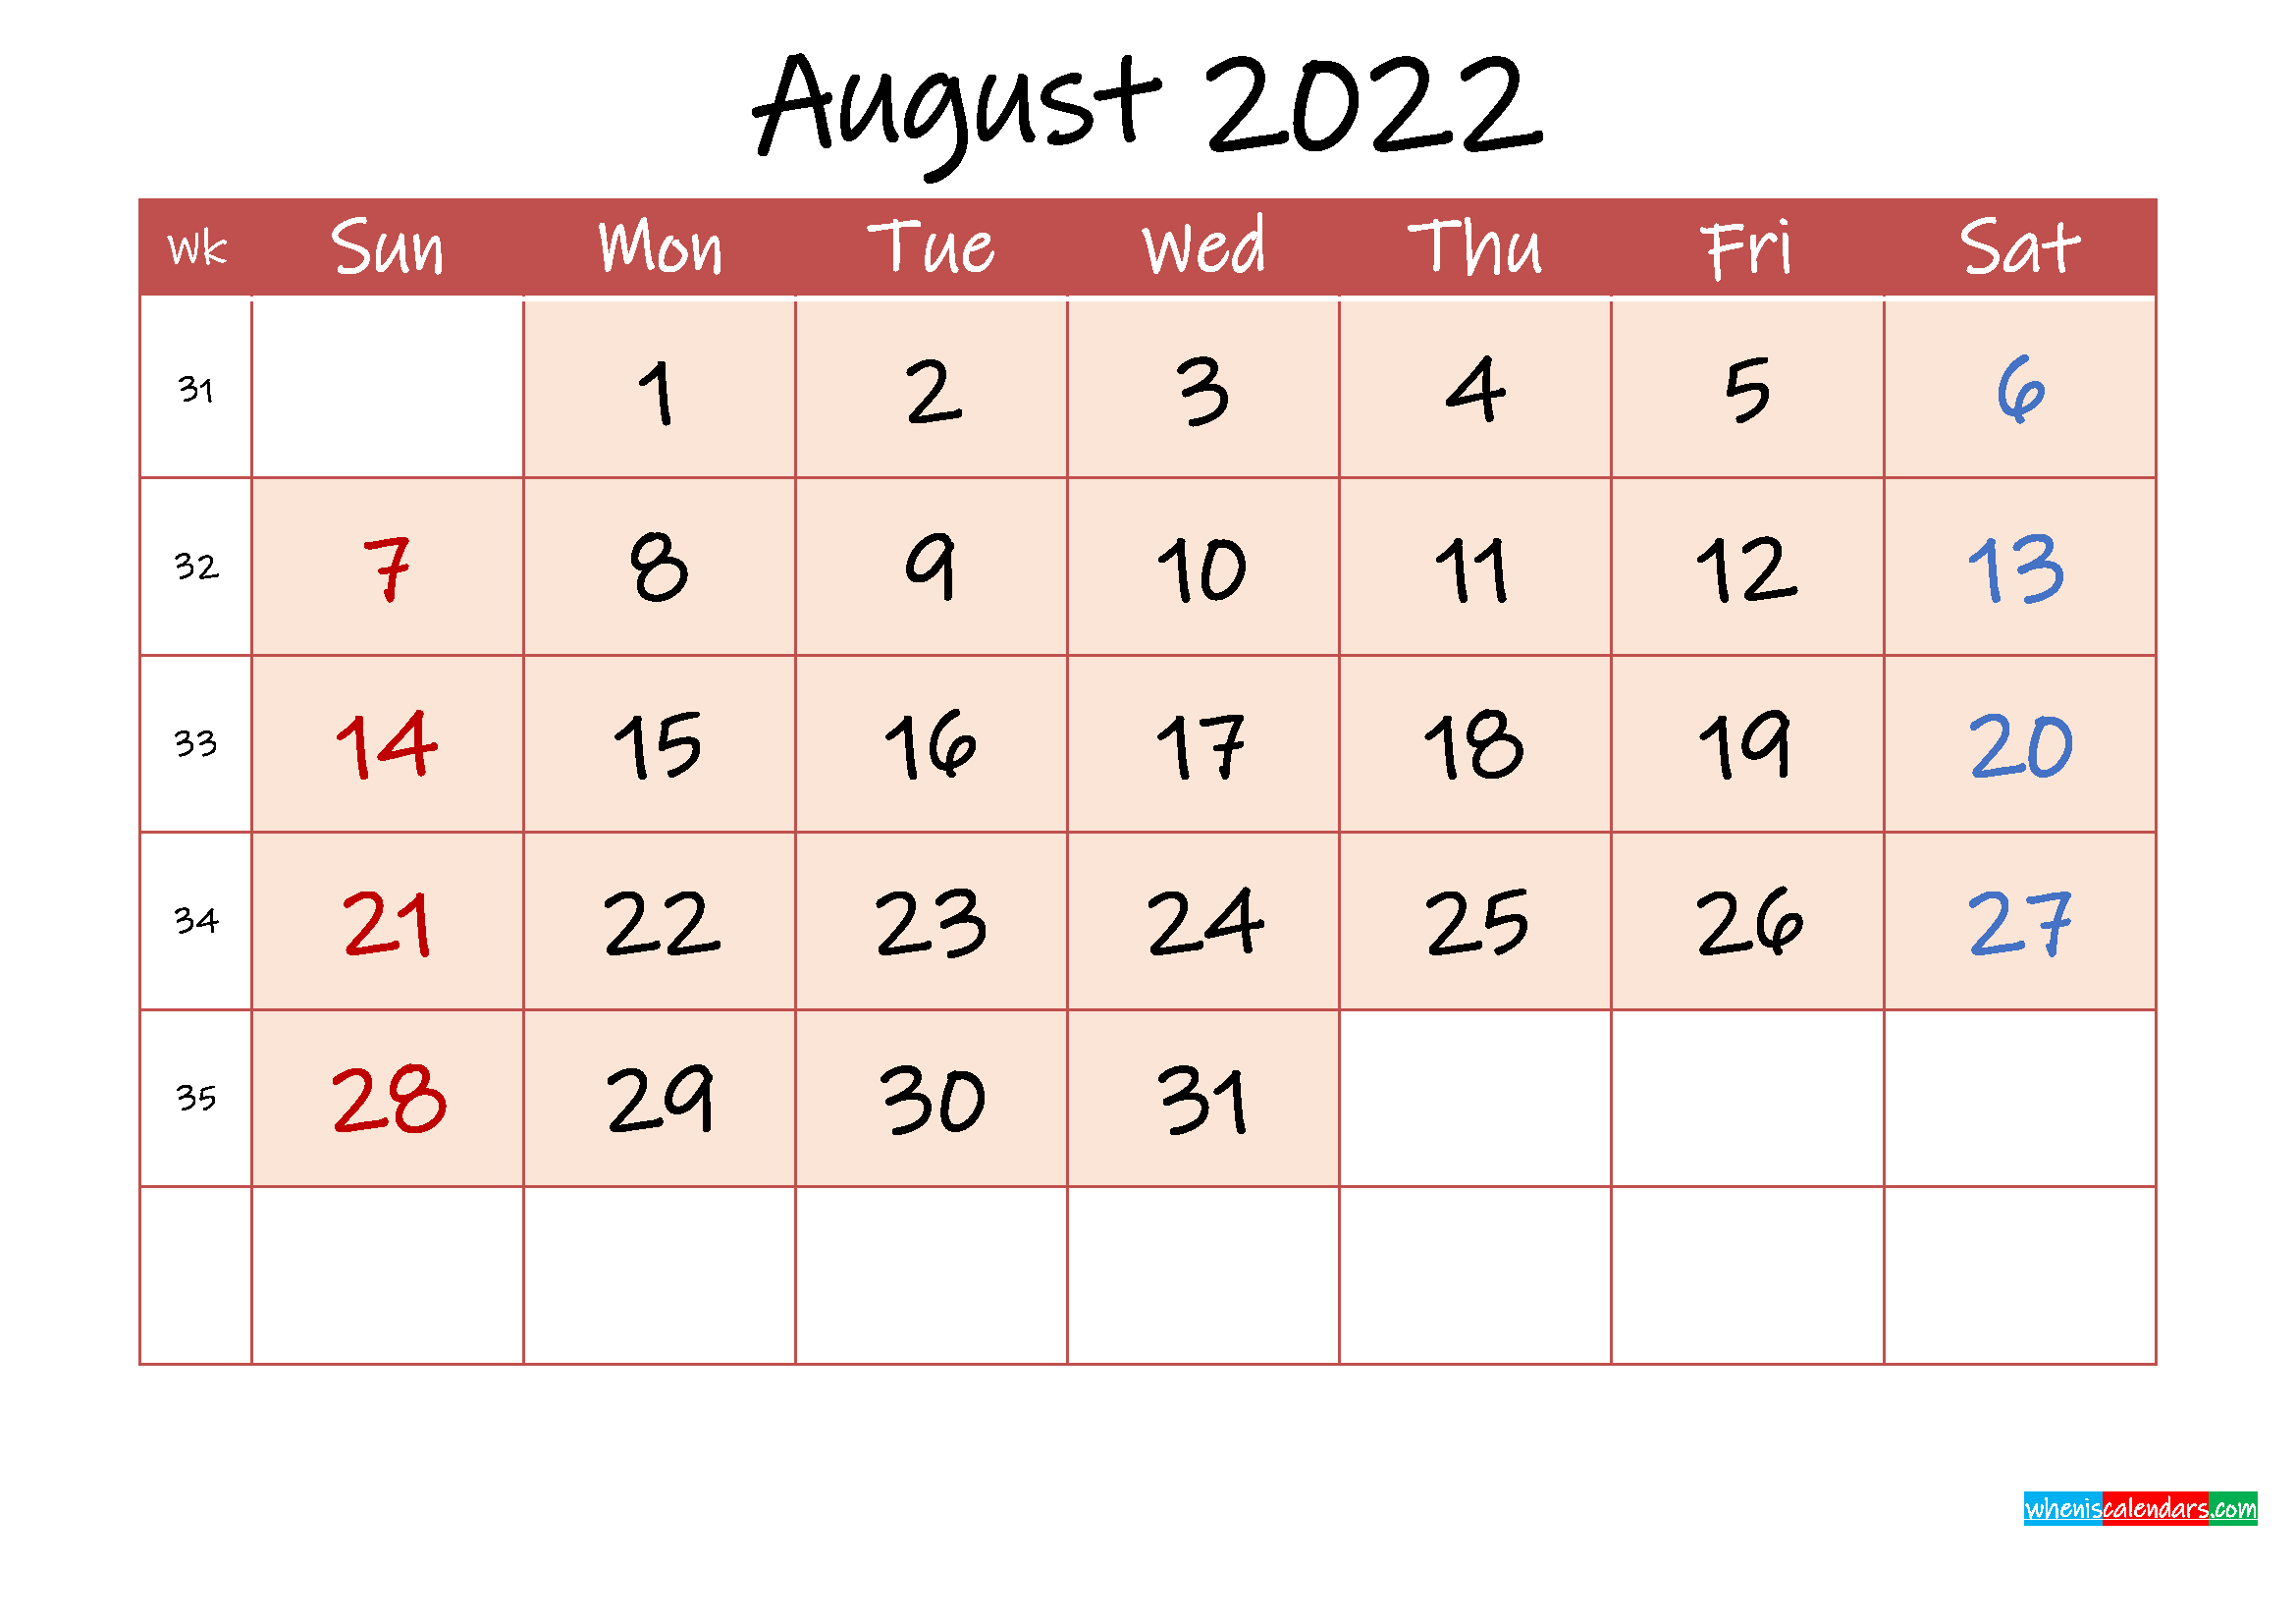 August 2022 Free Printable Calendar with Holidays